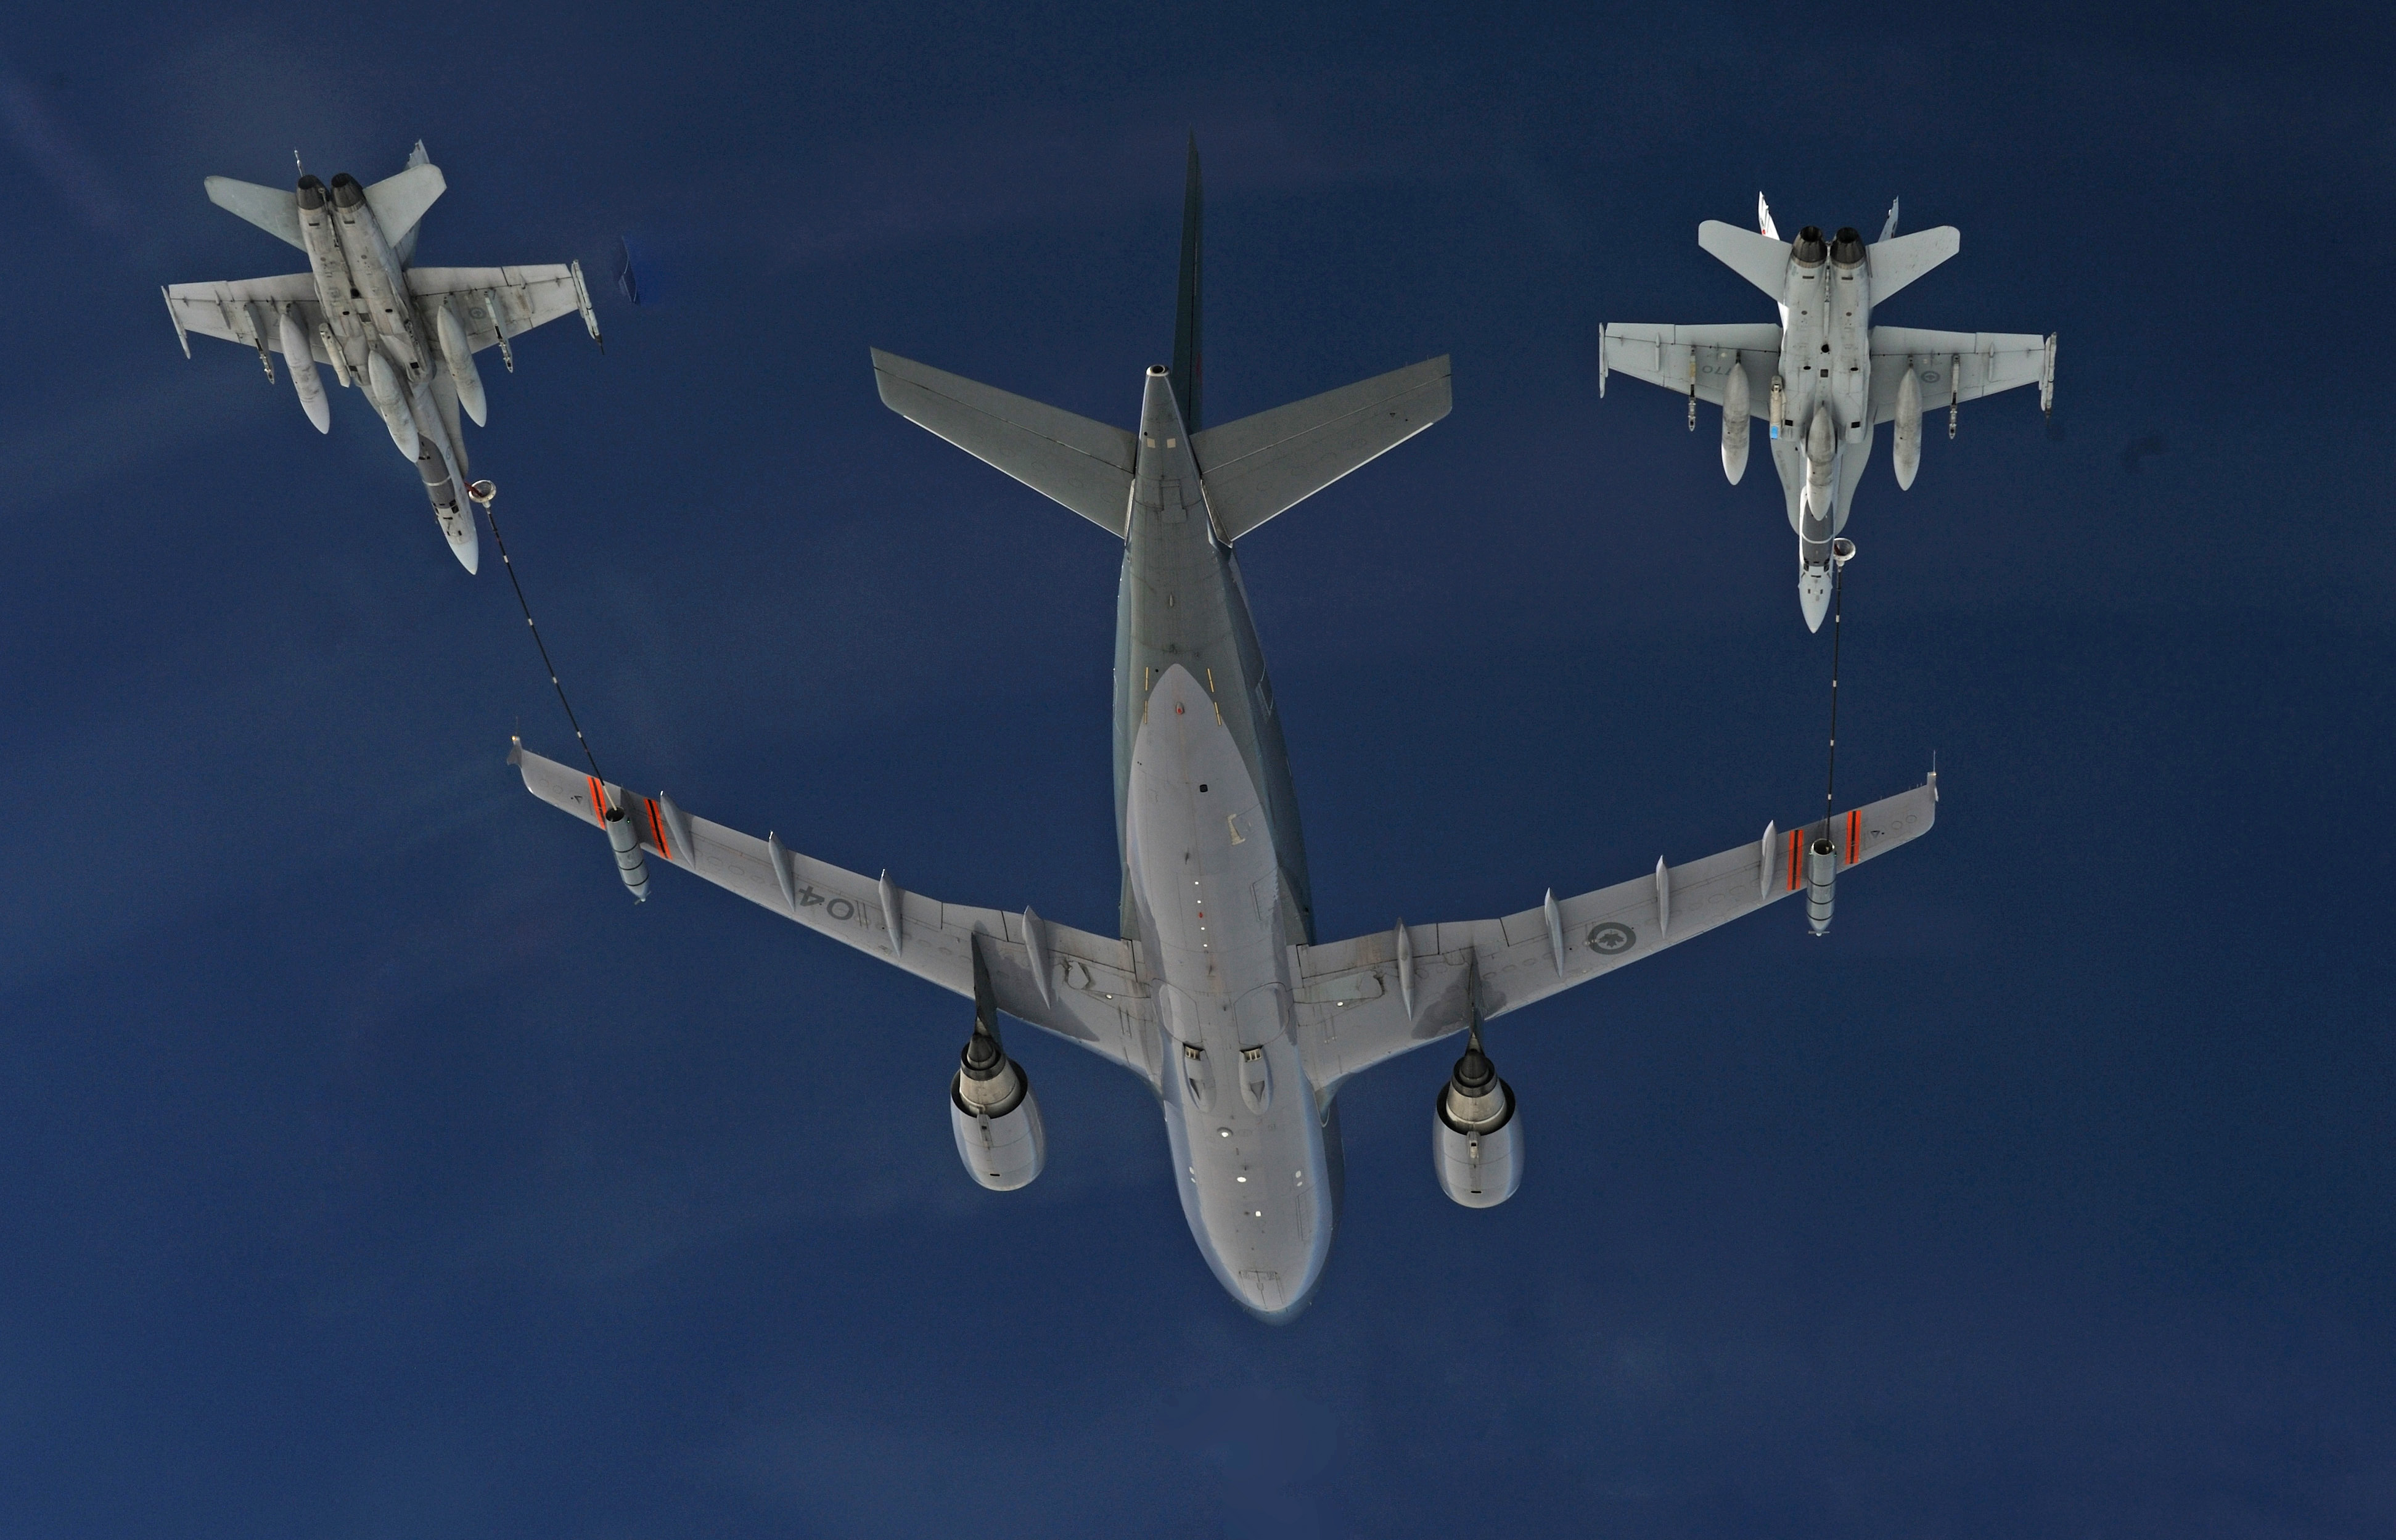 A CC-150 Polaris (Airbus) from 437 Transport Squadron (located at 8 Wing Trenton, Ontario) provides air-to-air refueling to CF-188 Hornet fighter aircraft from 409 Tactical Fighter Squadron (located at 4 Wing Cold Lake, Alberta) during NORAD's Exercise Vigilant Eagle 13 on August 28, 2013. PHOTO: Corporal Vicky Lefrançois